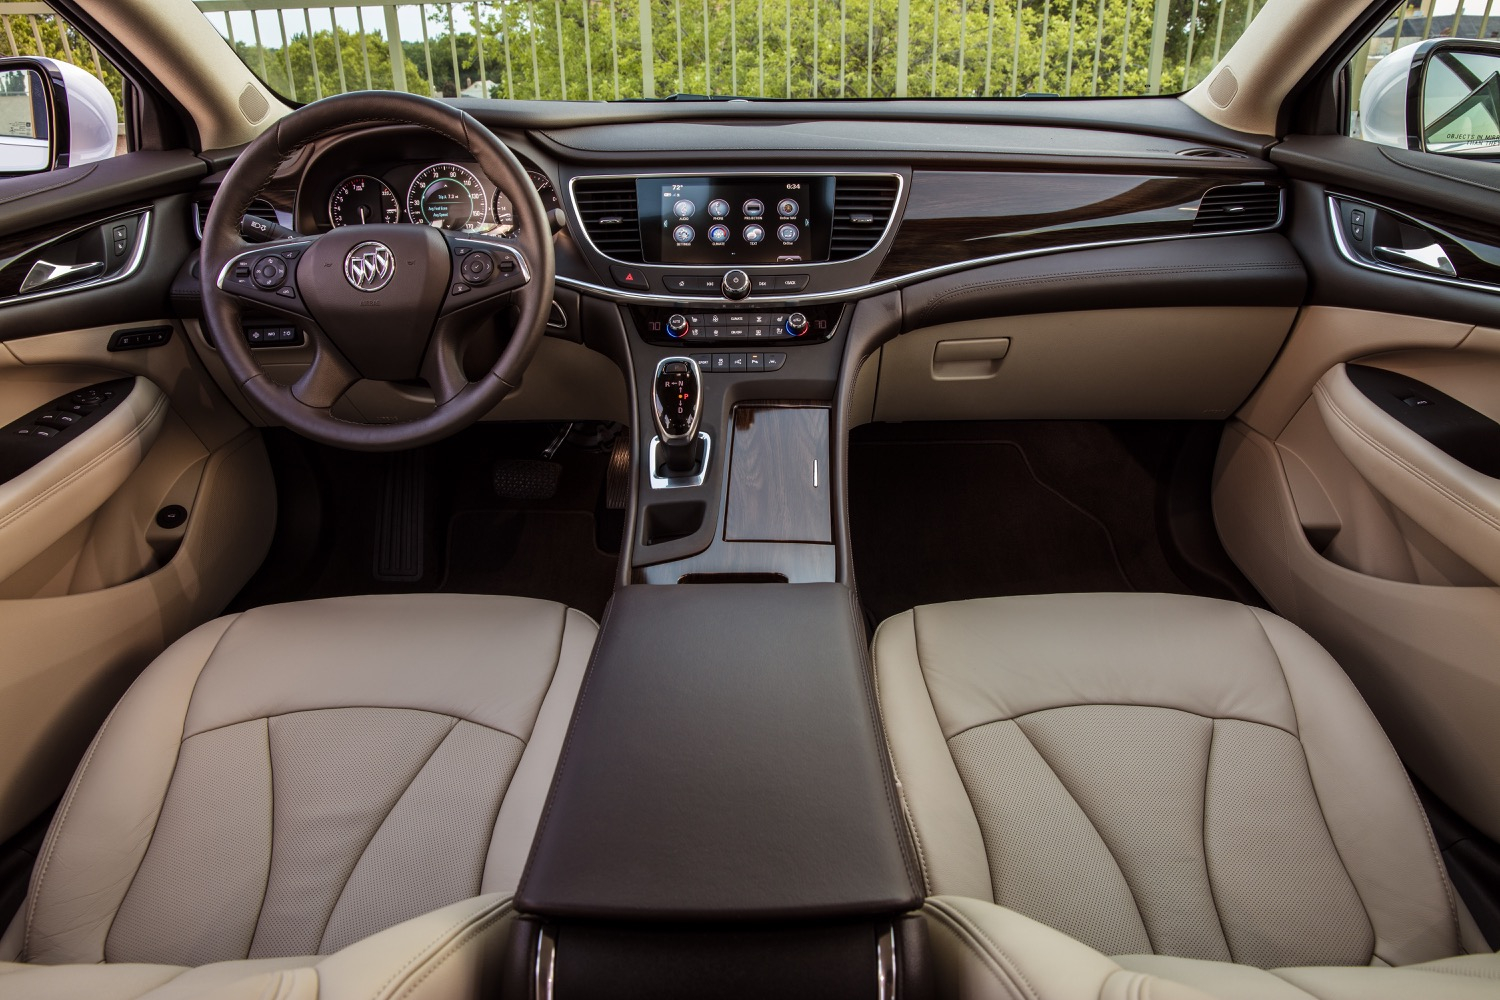 New Pewter Metallic Color For 2019 Buick Lacrosse | Gm Authority 2022 Buick Regal Tourx Interior, Brochure, Preferred